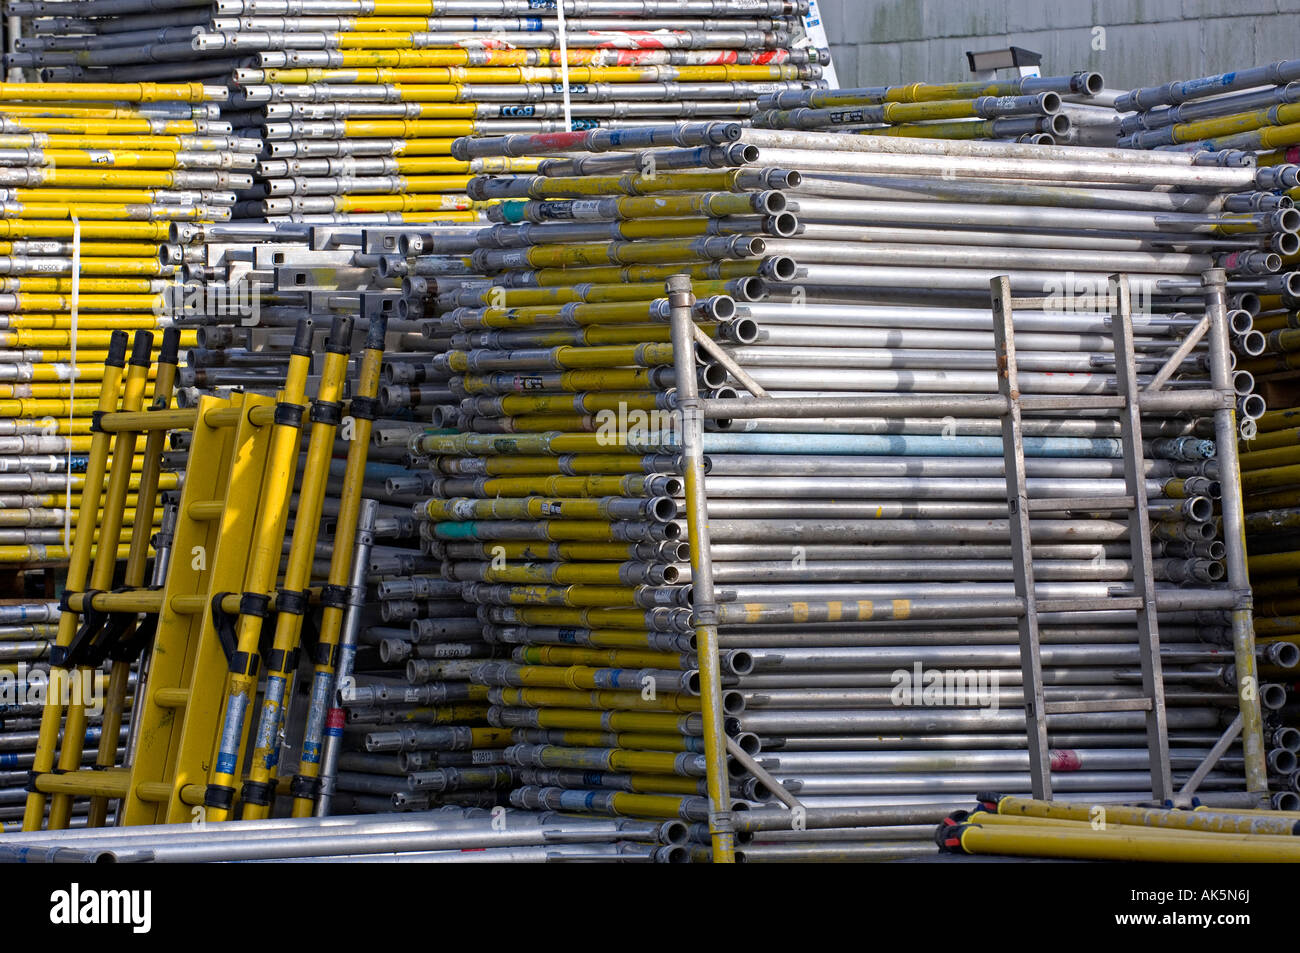 scaffolding piled up on construction site - Stock Image